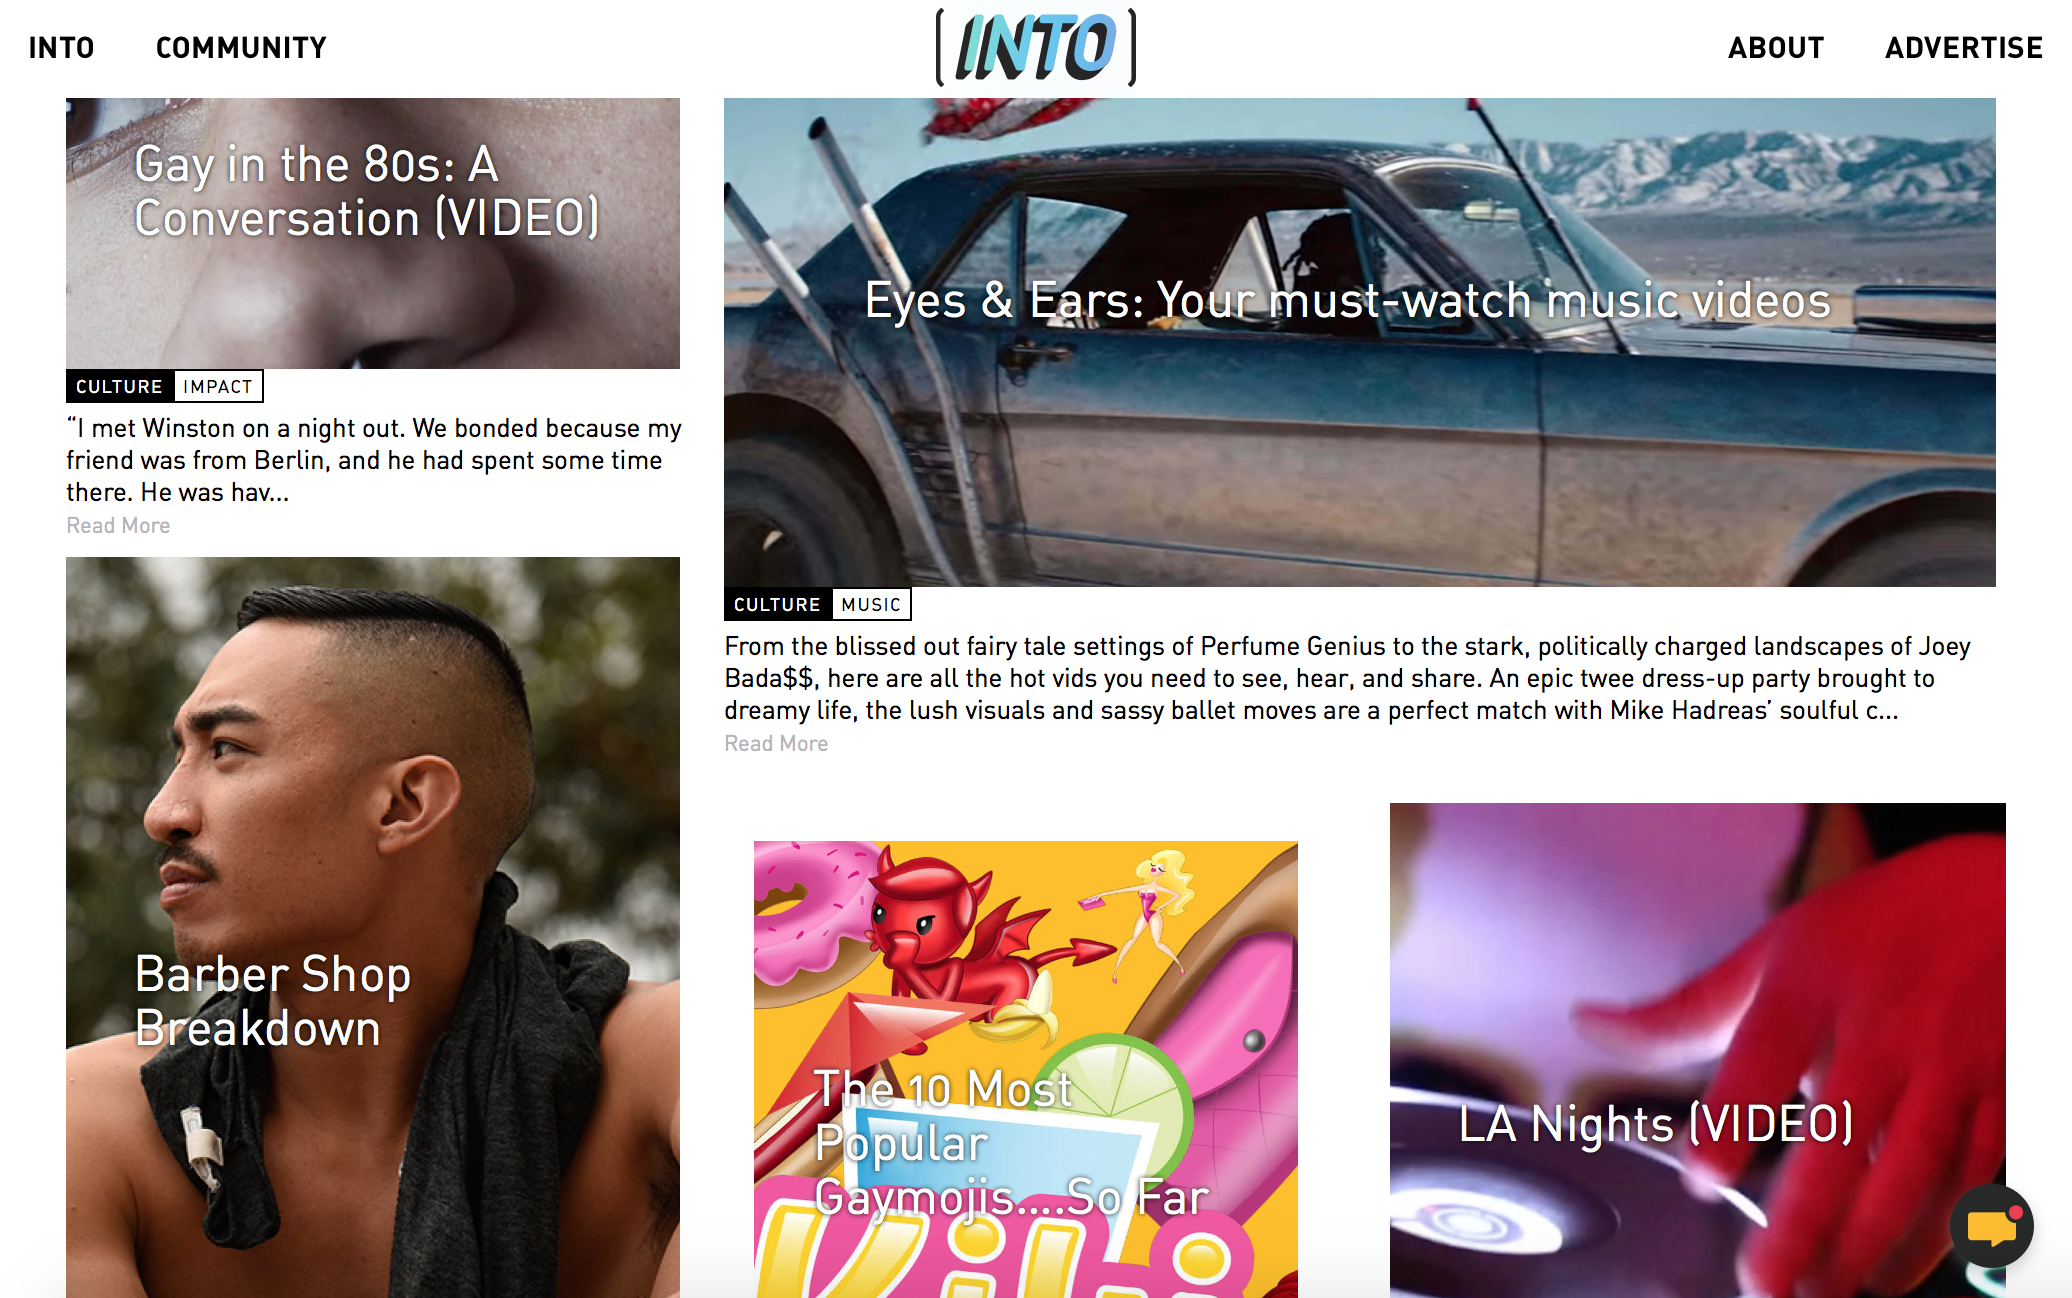 Grindr Continues Brand Evolution With Launch Of New Lifestyle Website Into